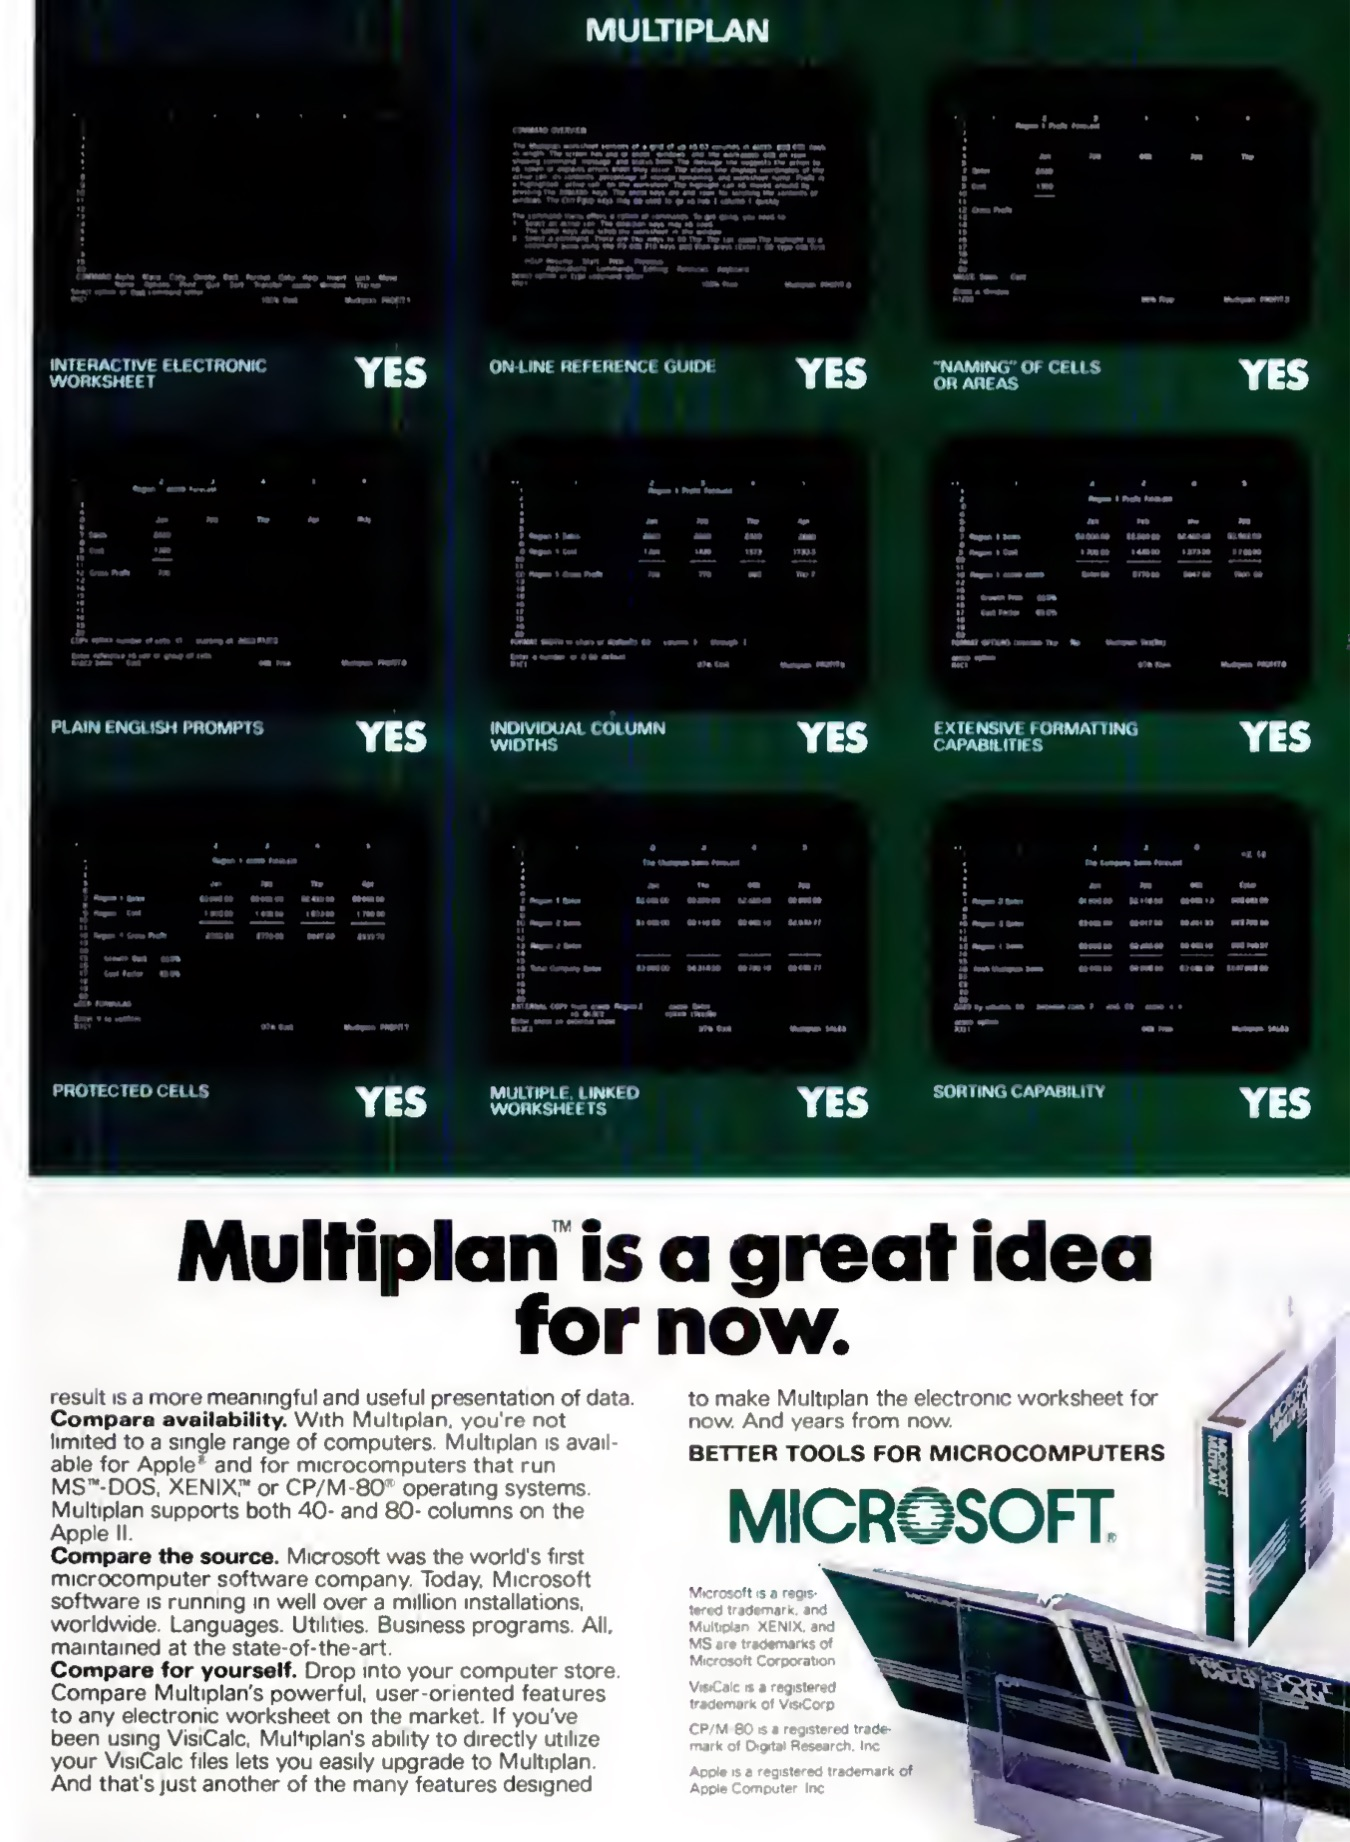 Multiplan Advertisement (2 of 2)